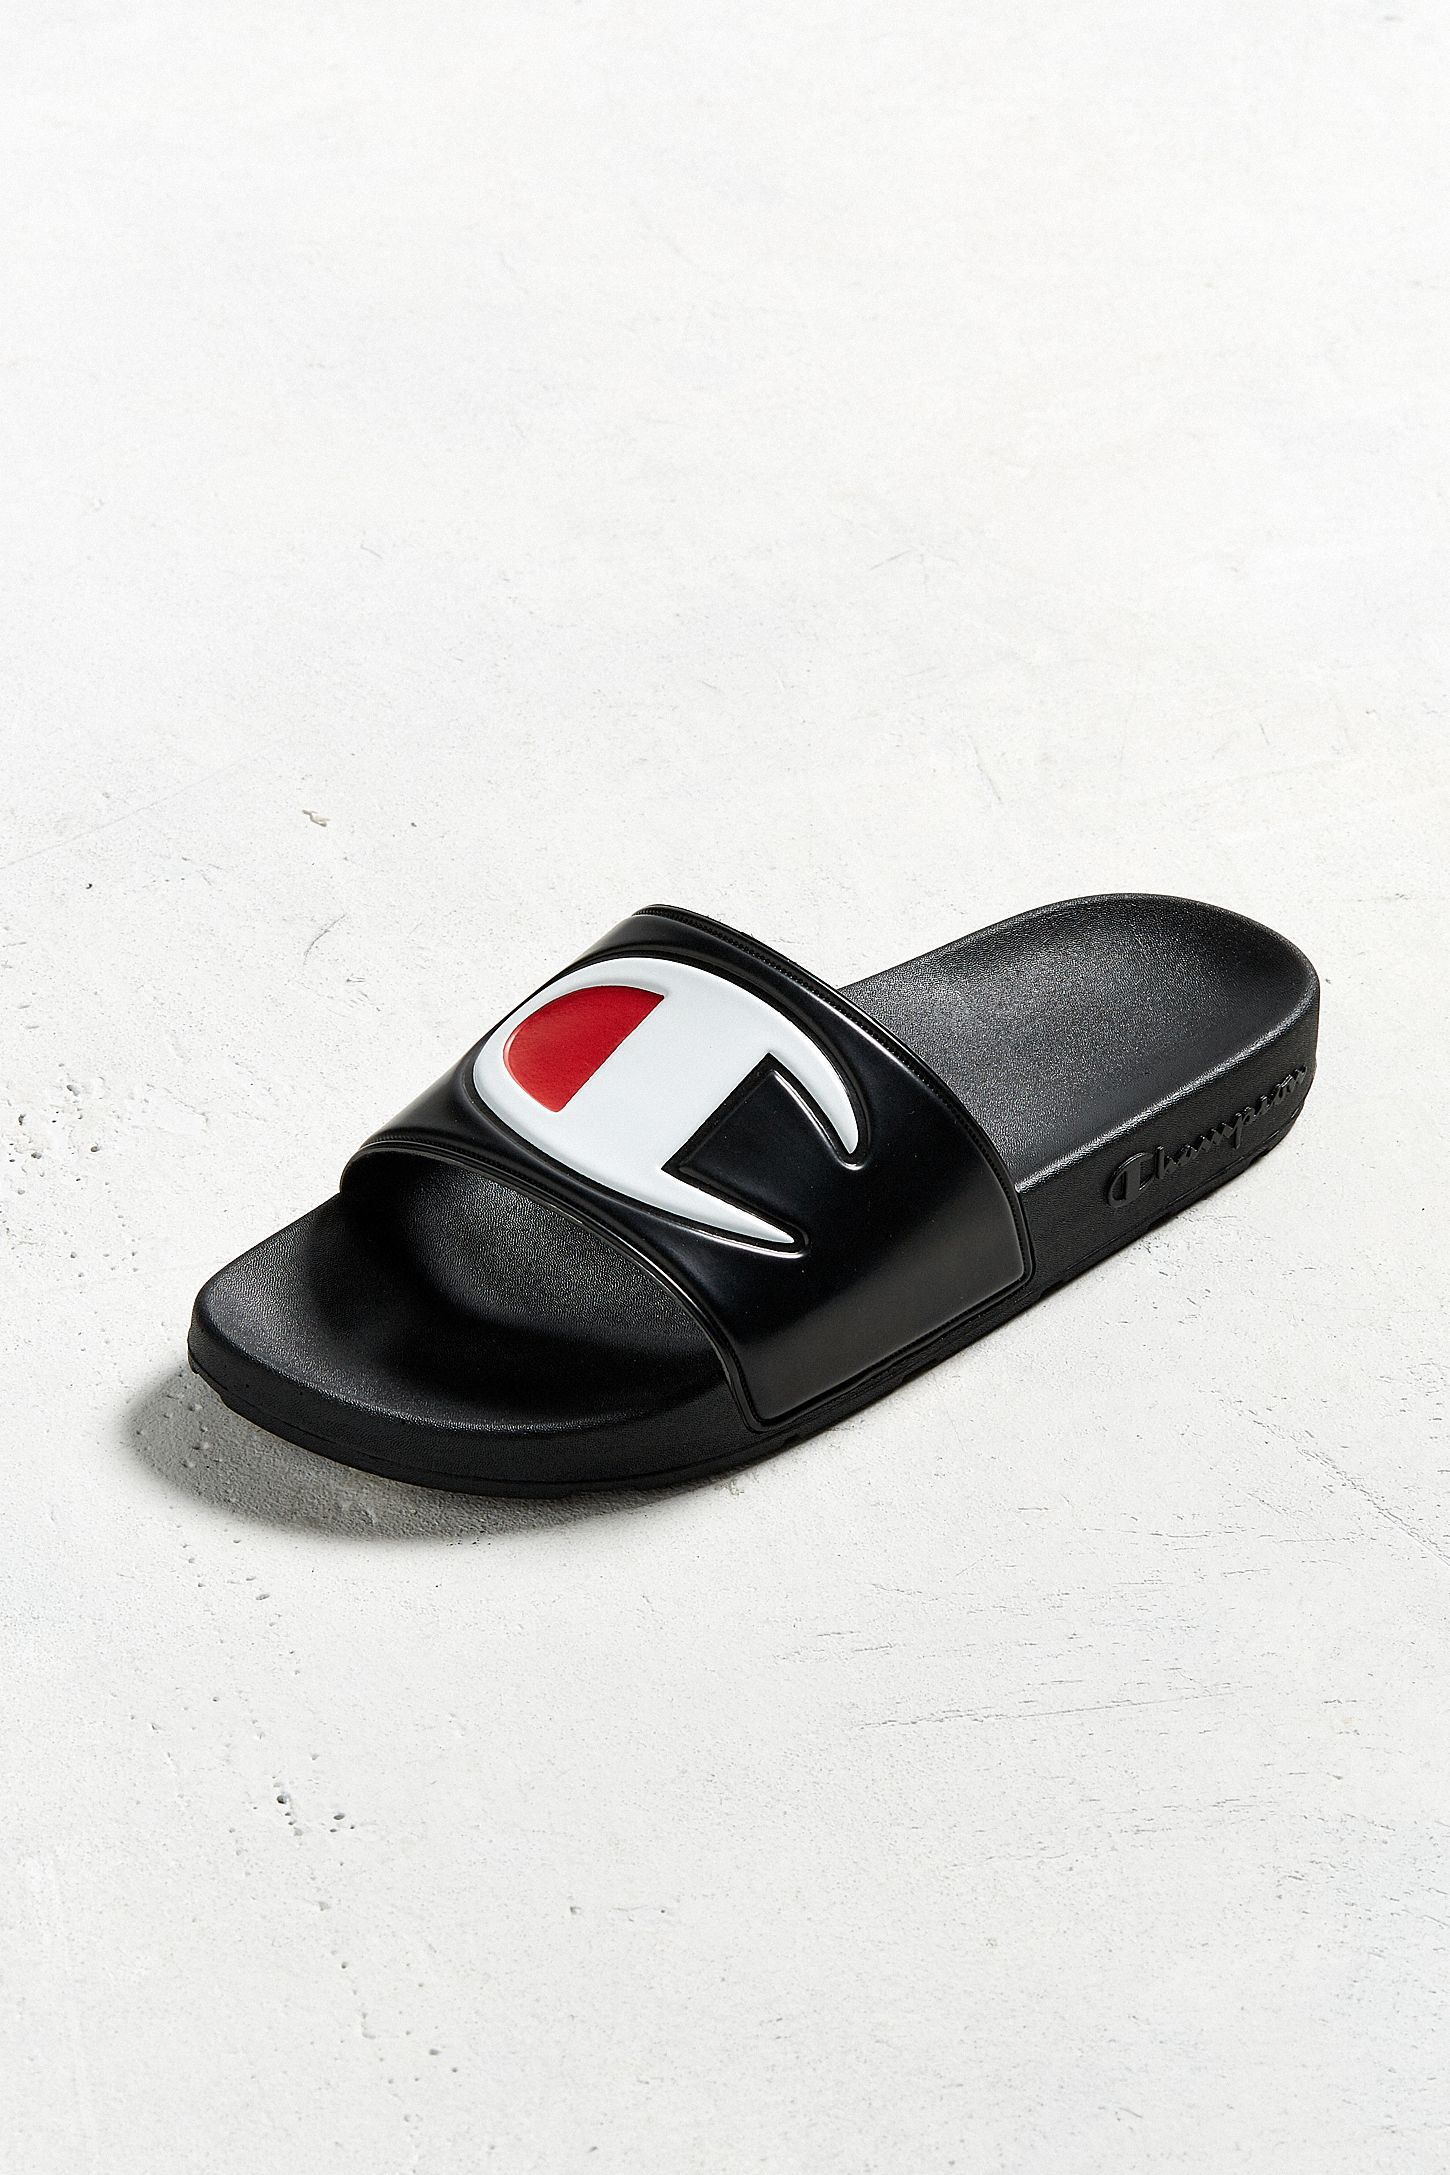 47ff9da78c757 Champion Big C Logo Slide Sandal